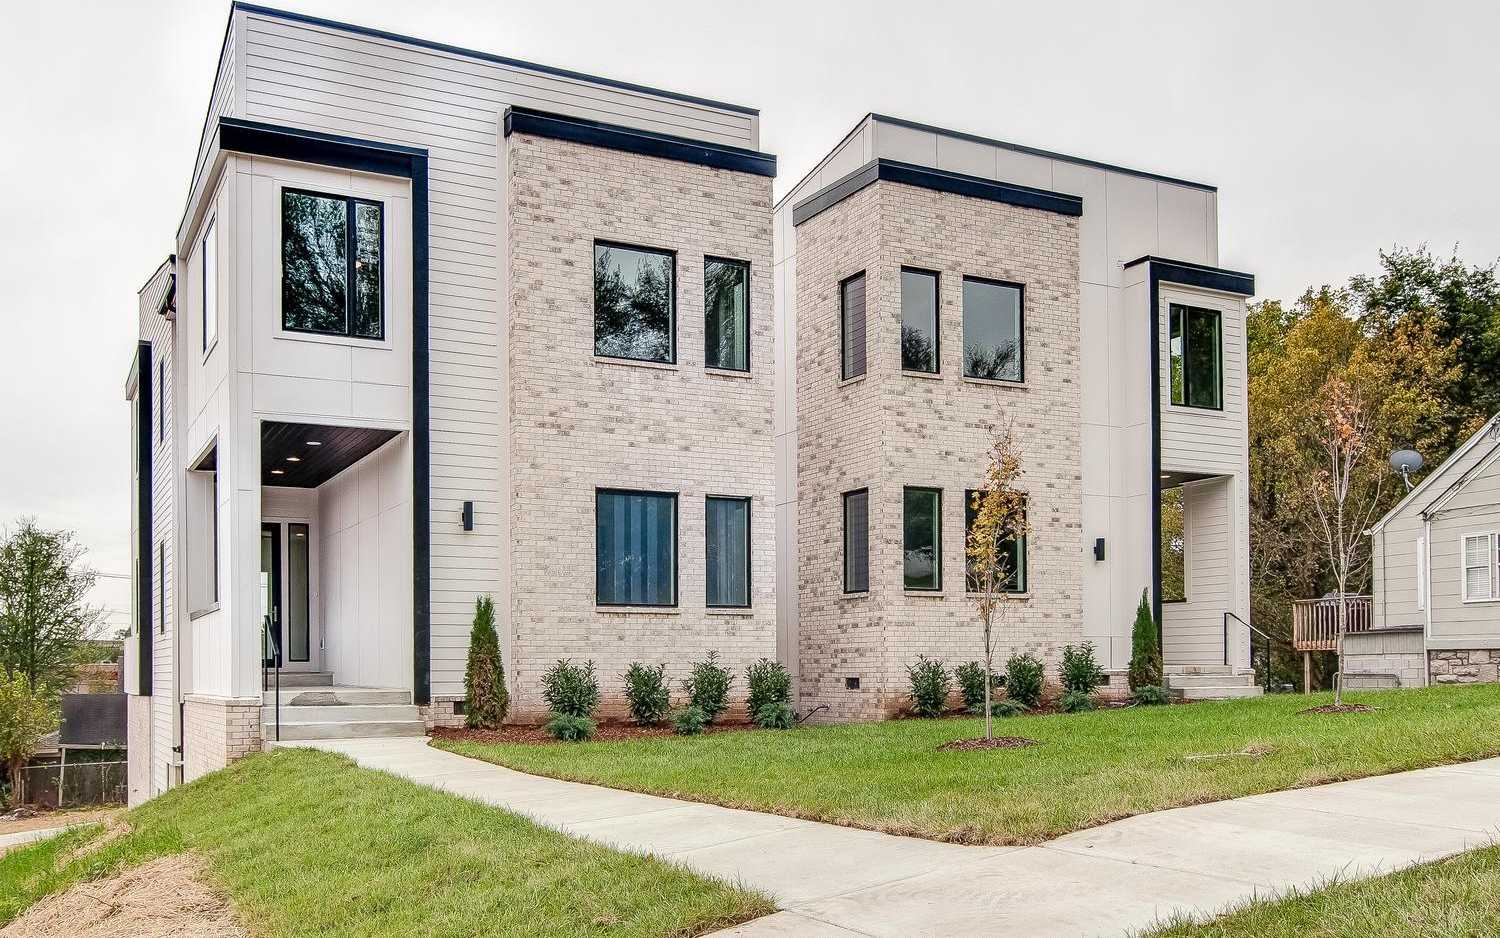 $689,900 - 4Br/3Ba -  for Sale in 12th S / Melrose, Nashville